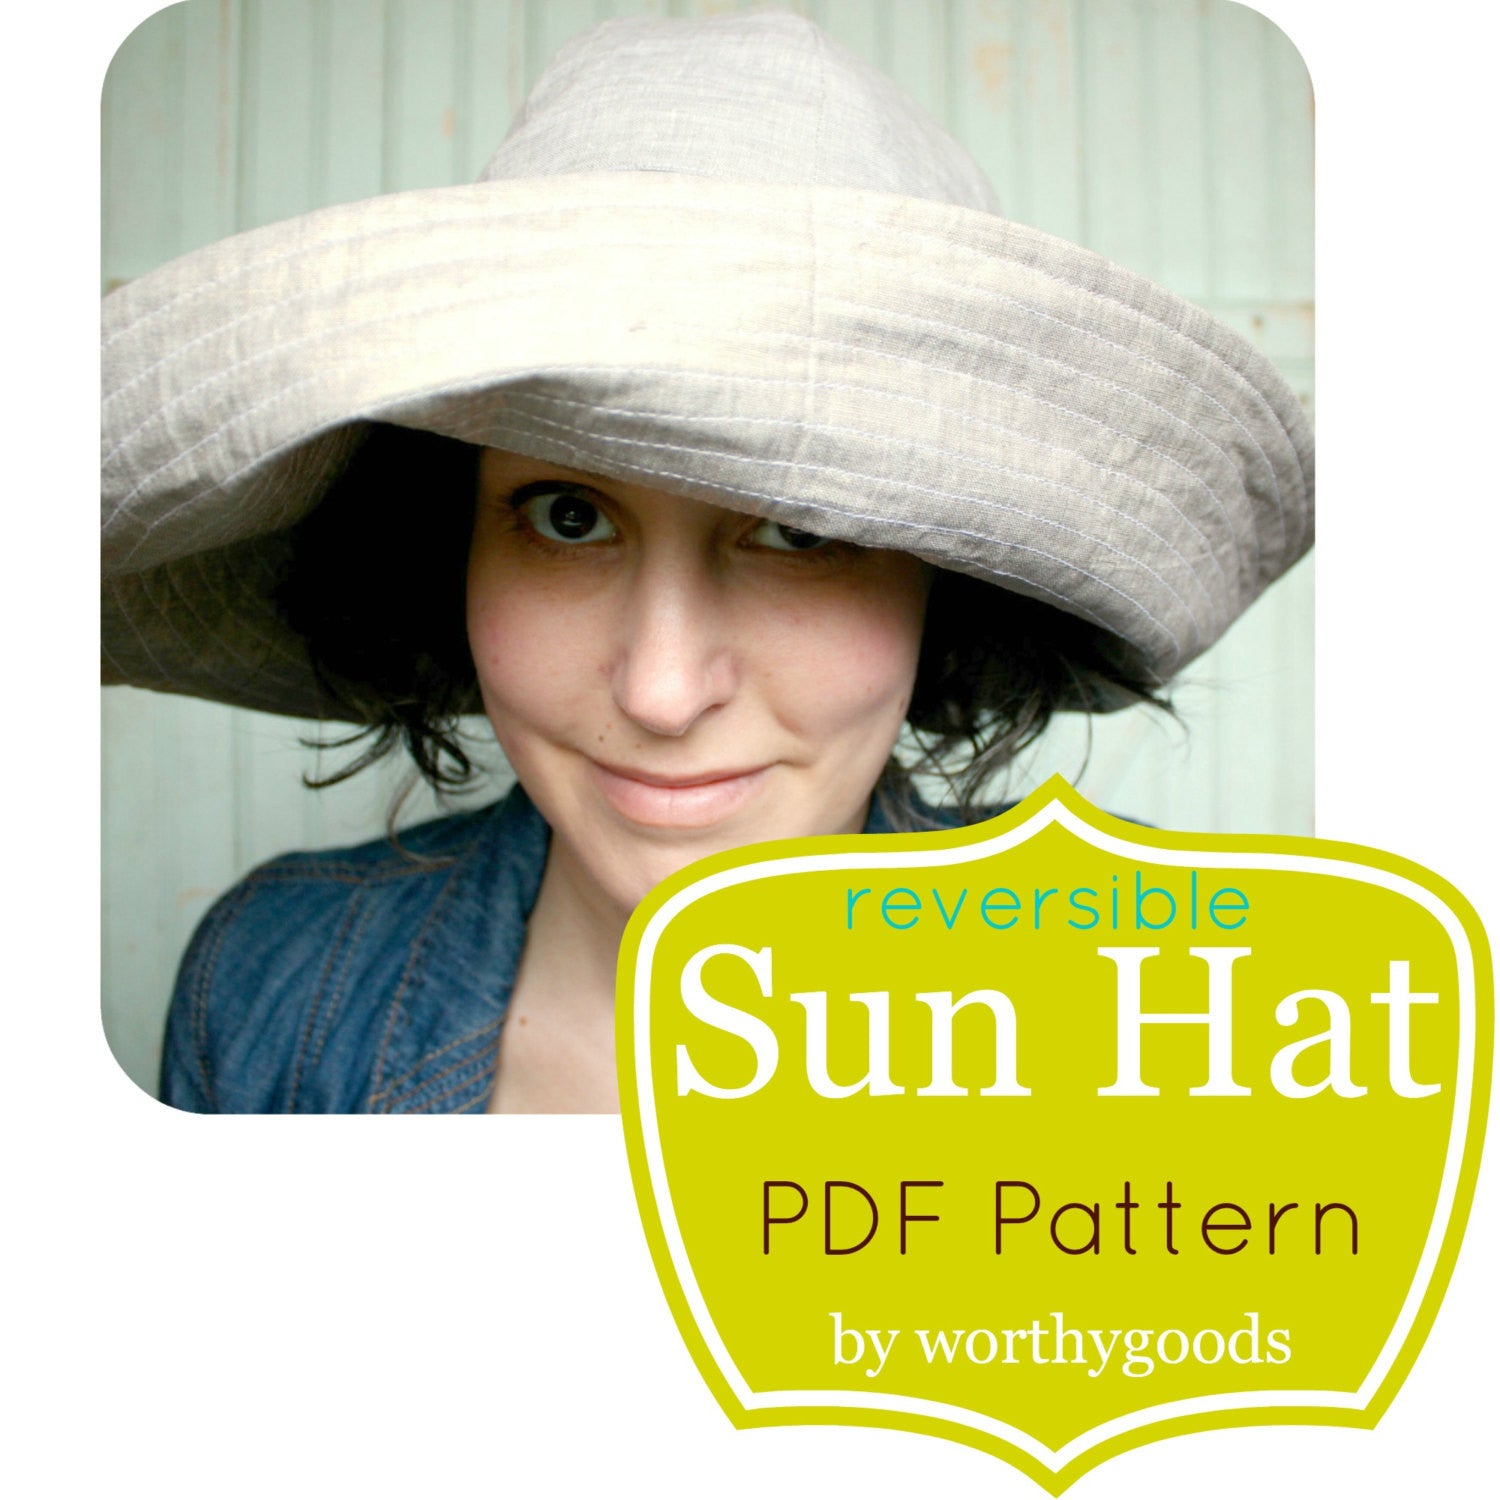 dd60ee7e2 Quick Sunhat DIY Sewing Project - worthygoods